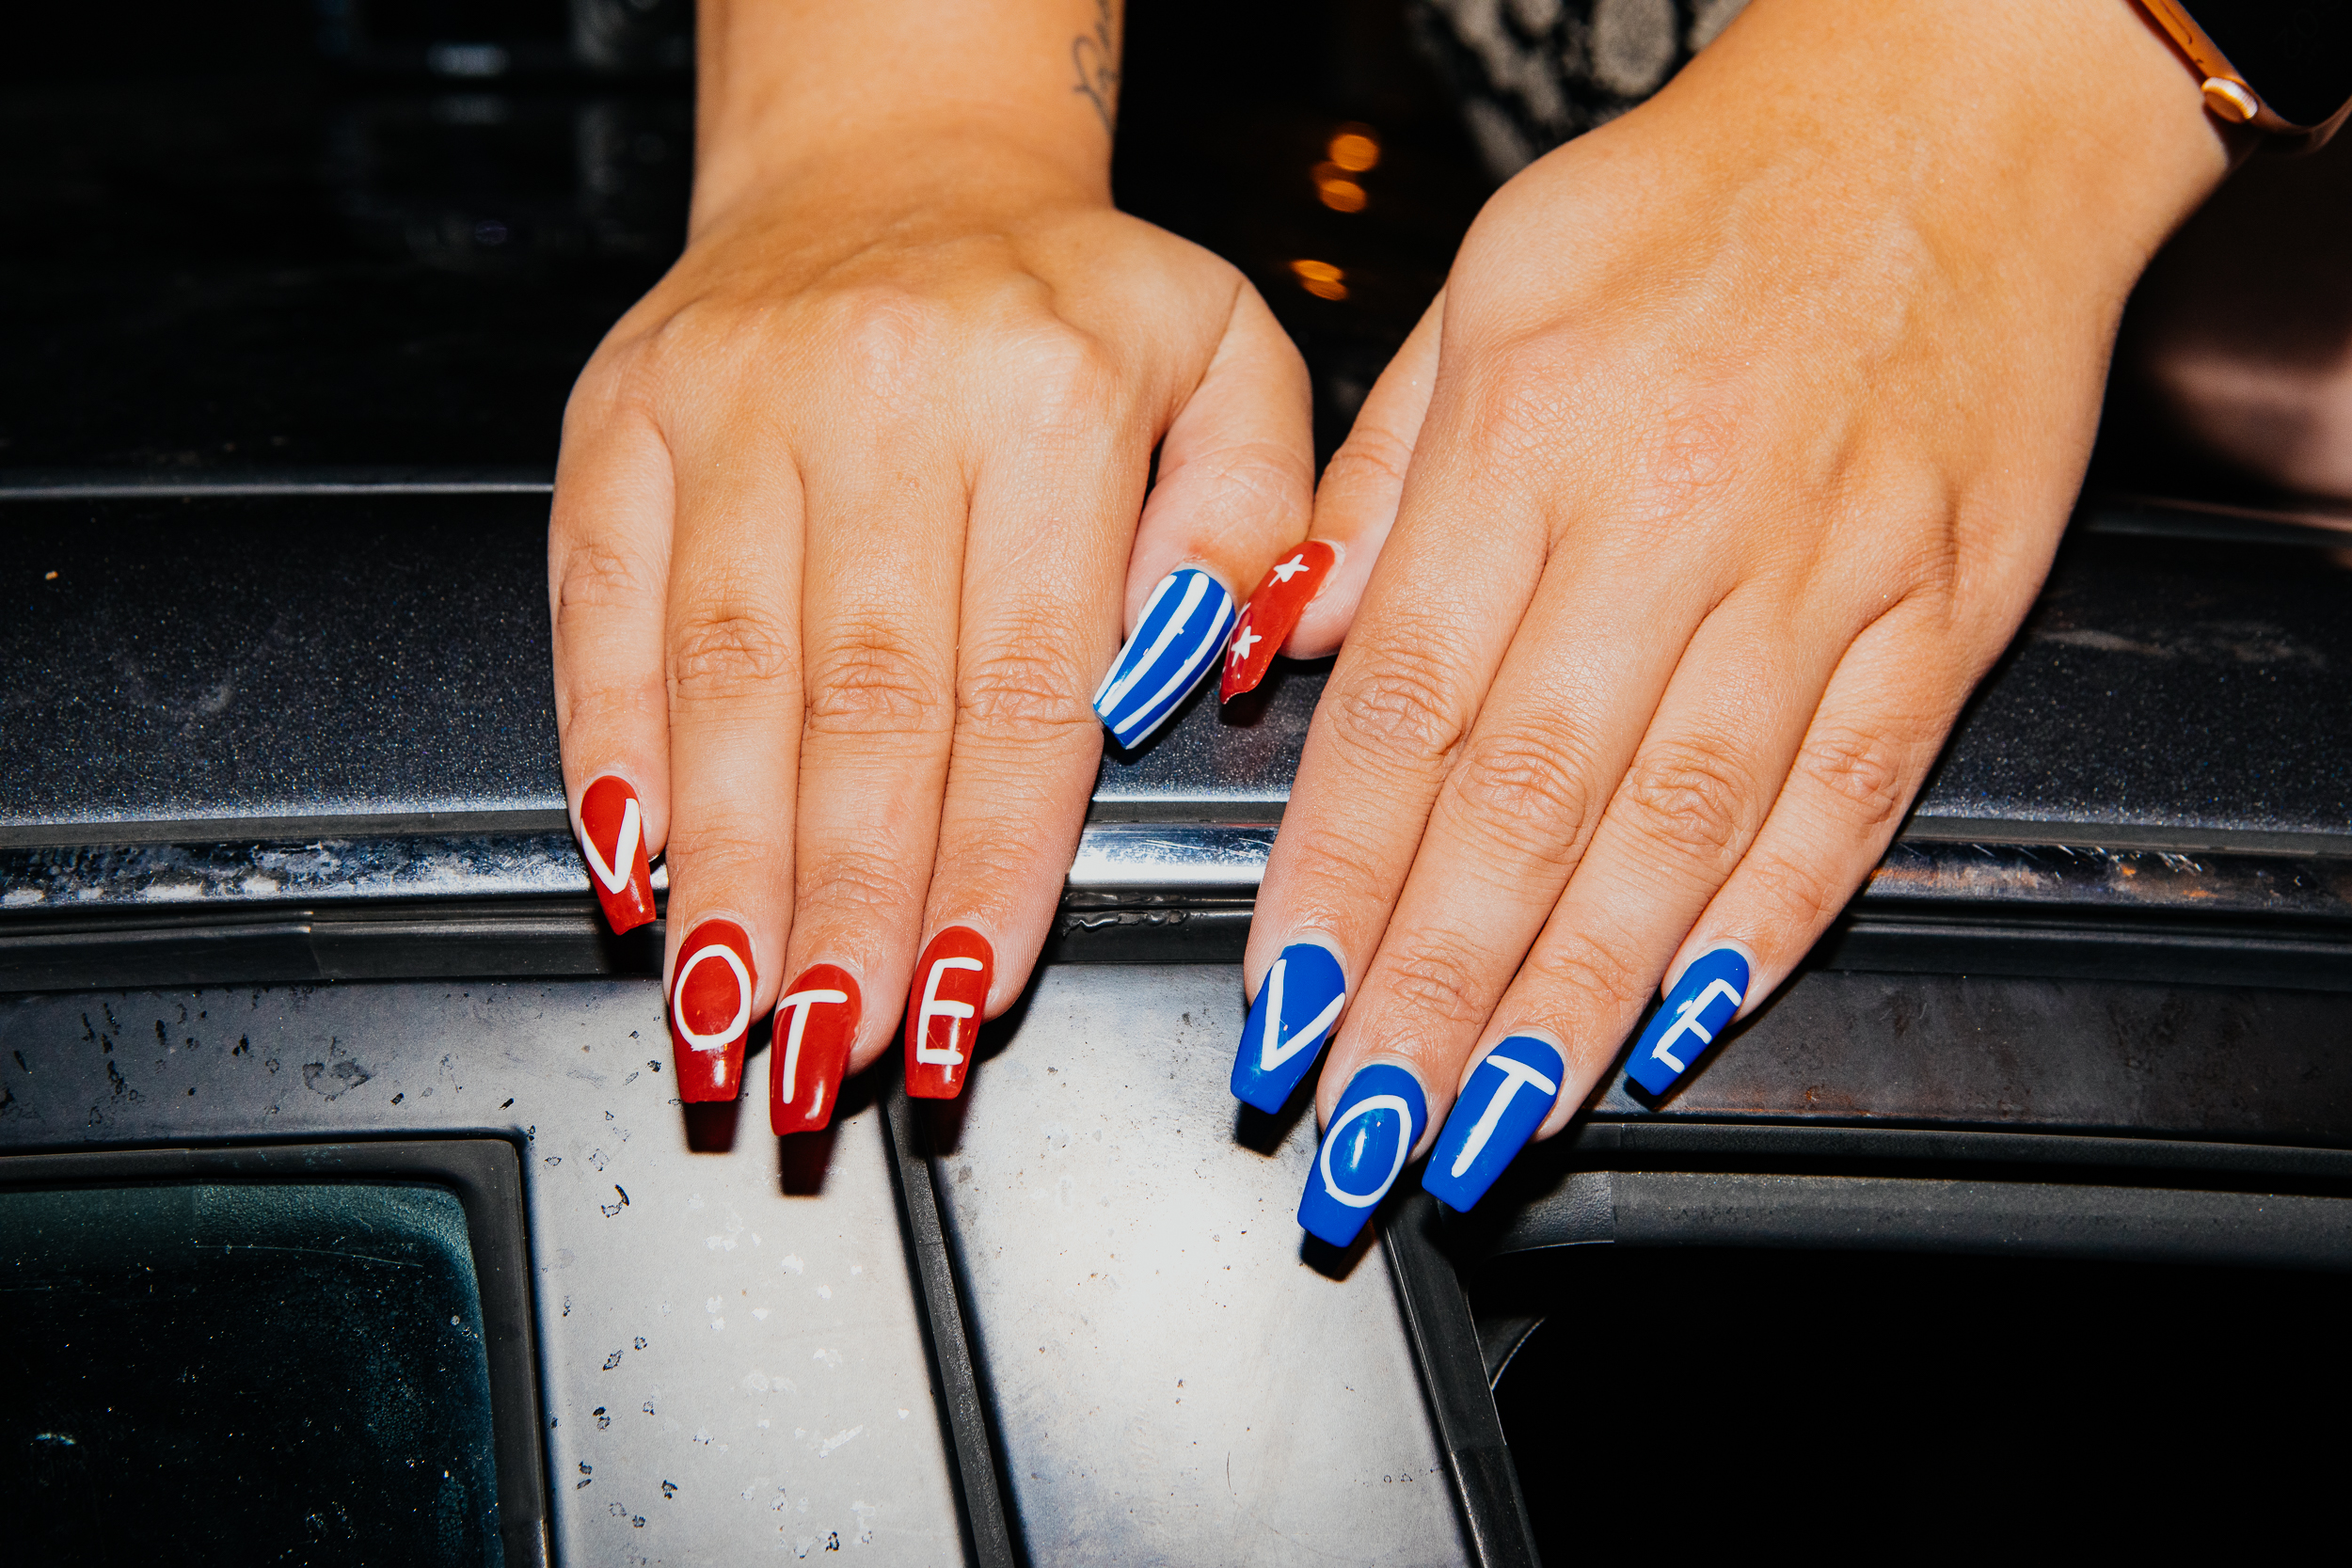 Vote  nails are seen on Madison Kopie, 25, as she sits on her car outside the Chase Center.